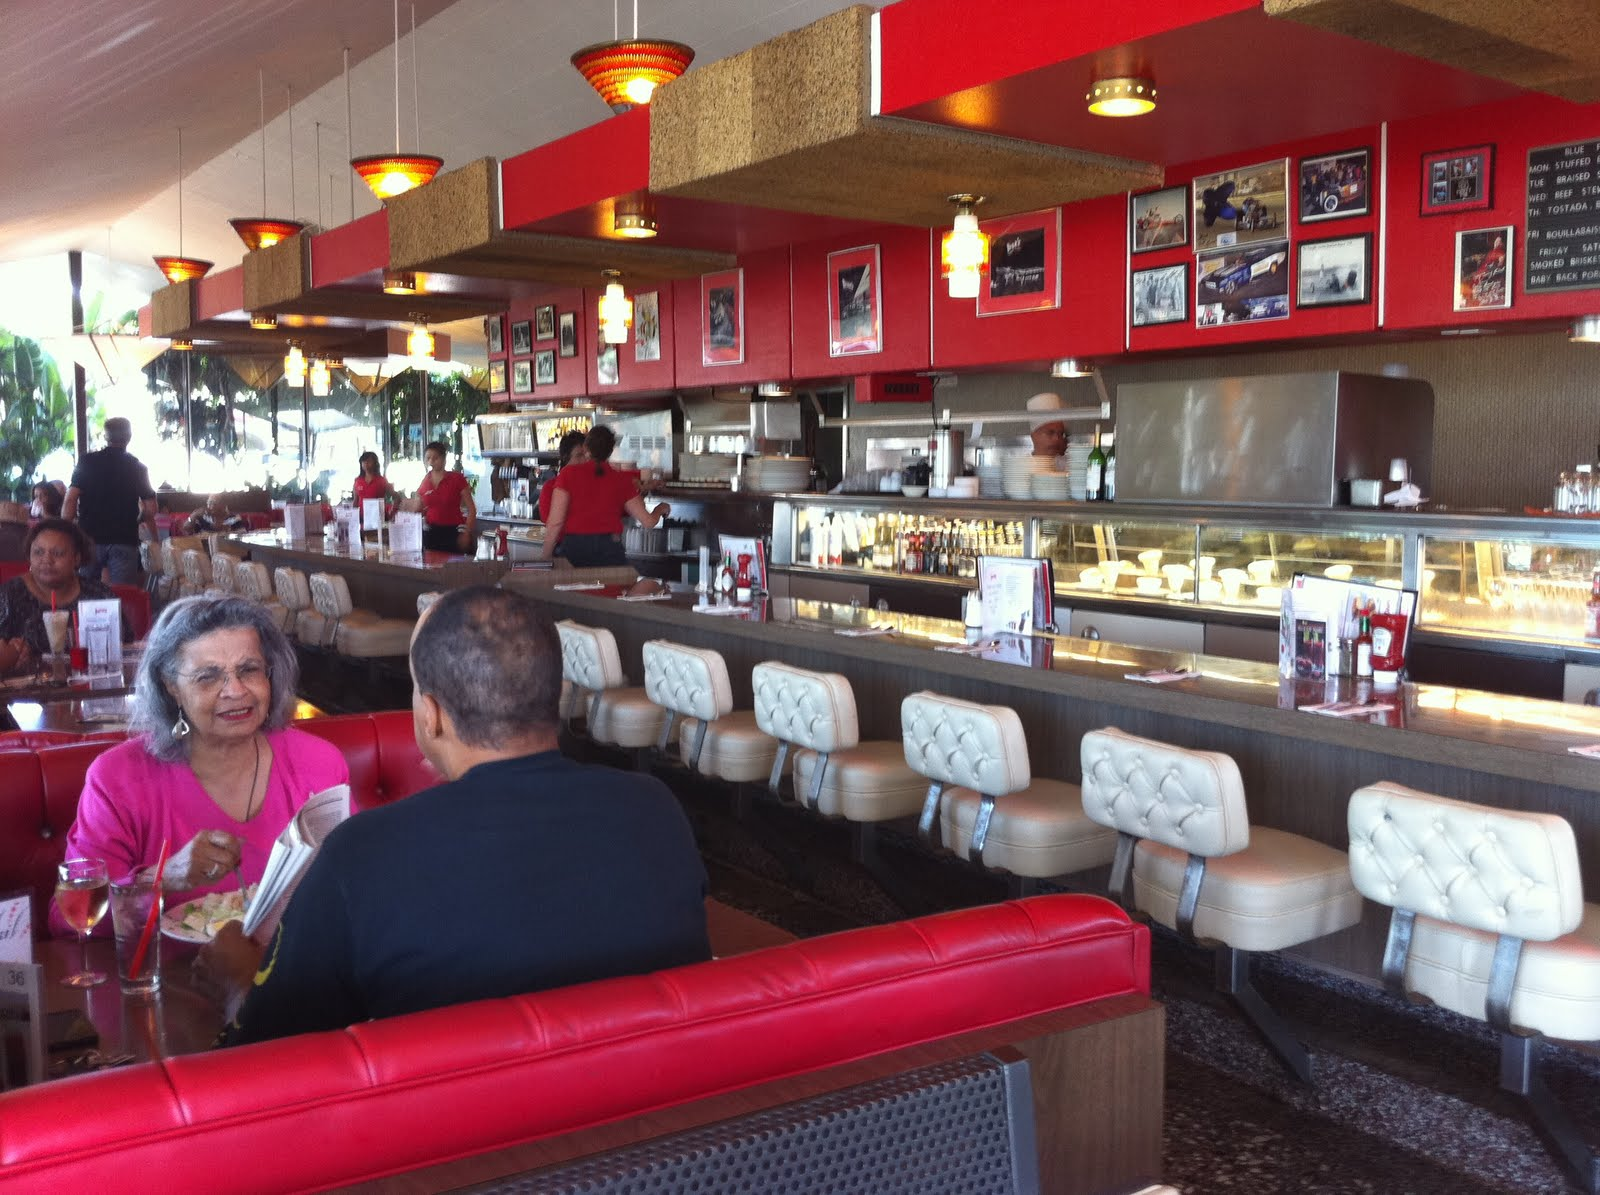 Googie, pulp fiction and bar areas on pinterest